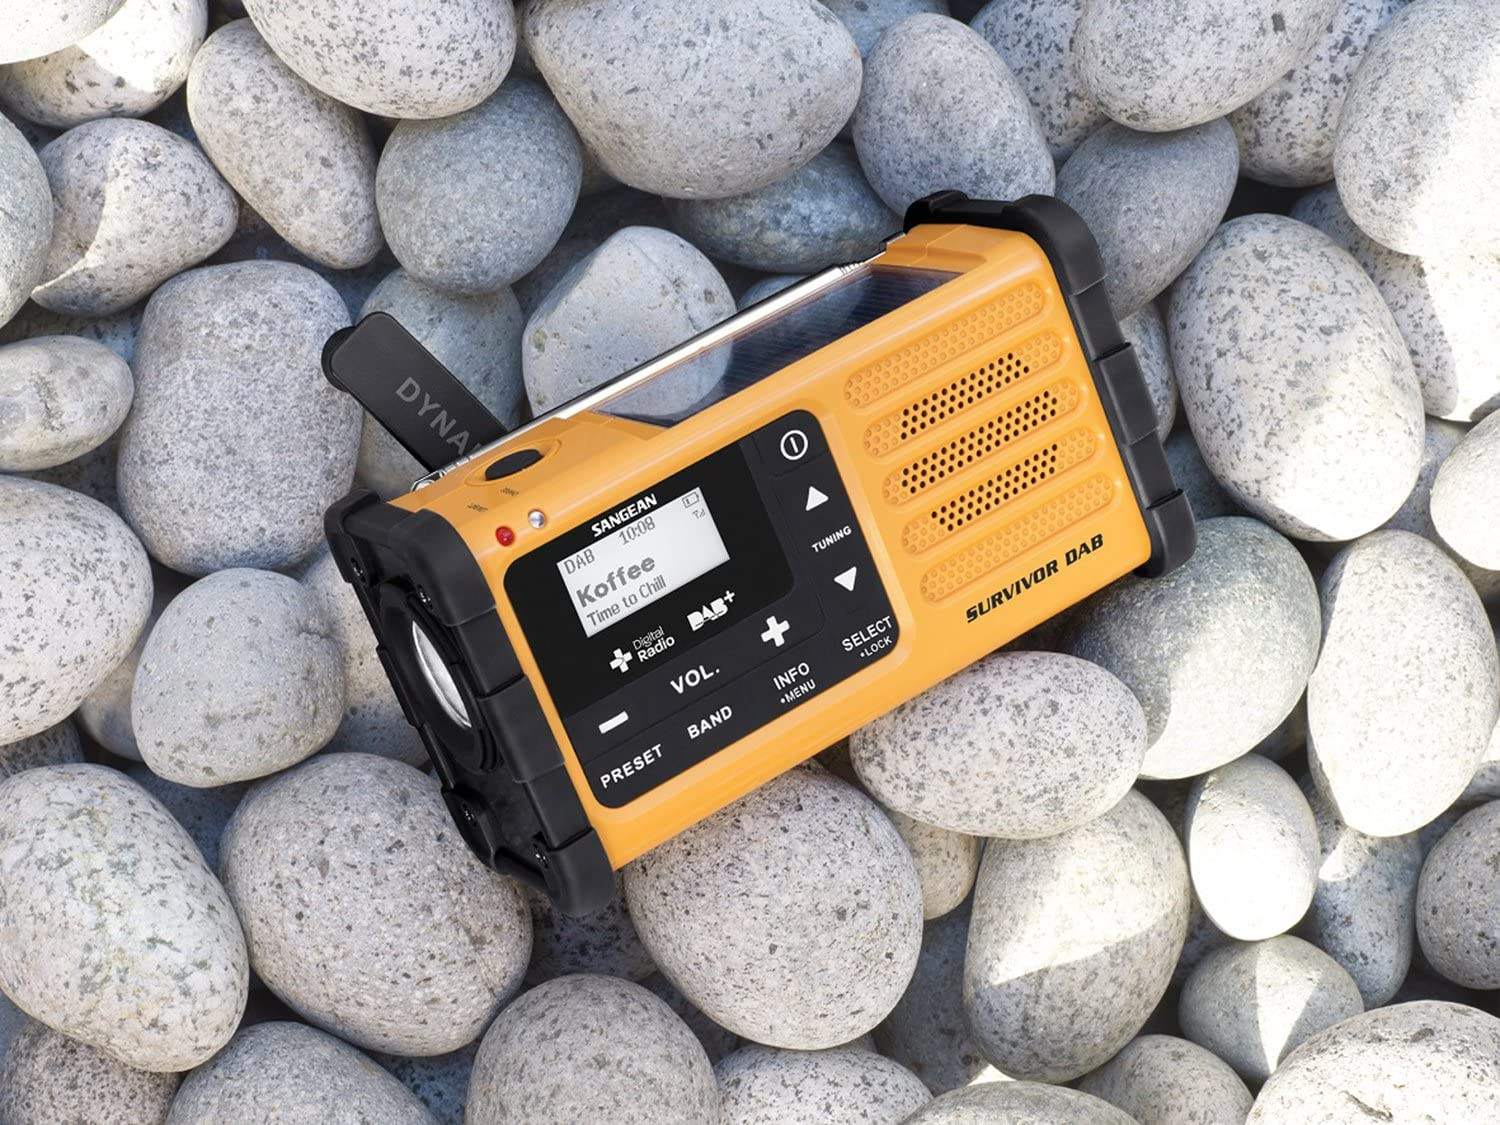 Sangean radio solaire d'urgence multifonction